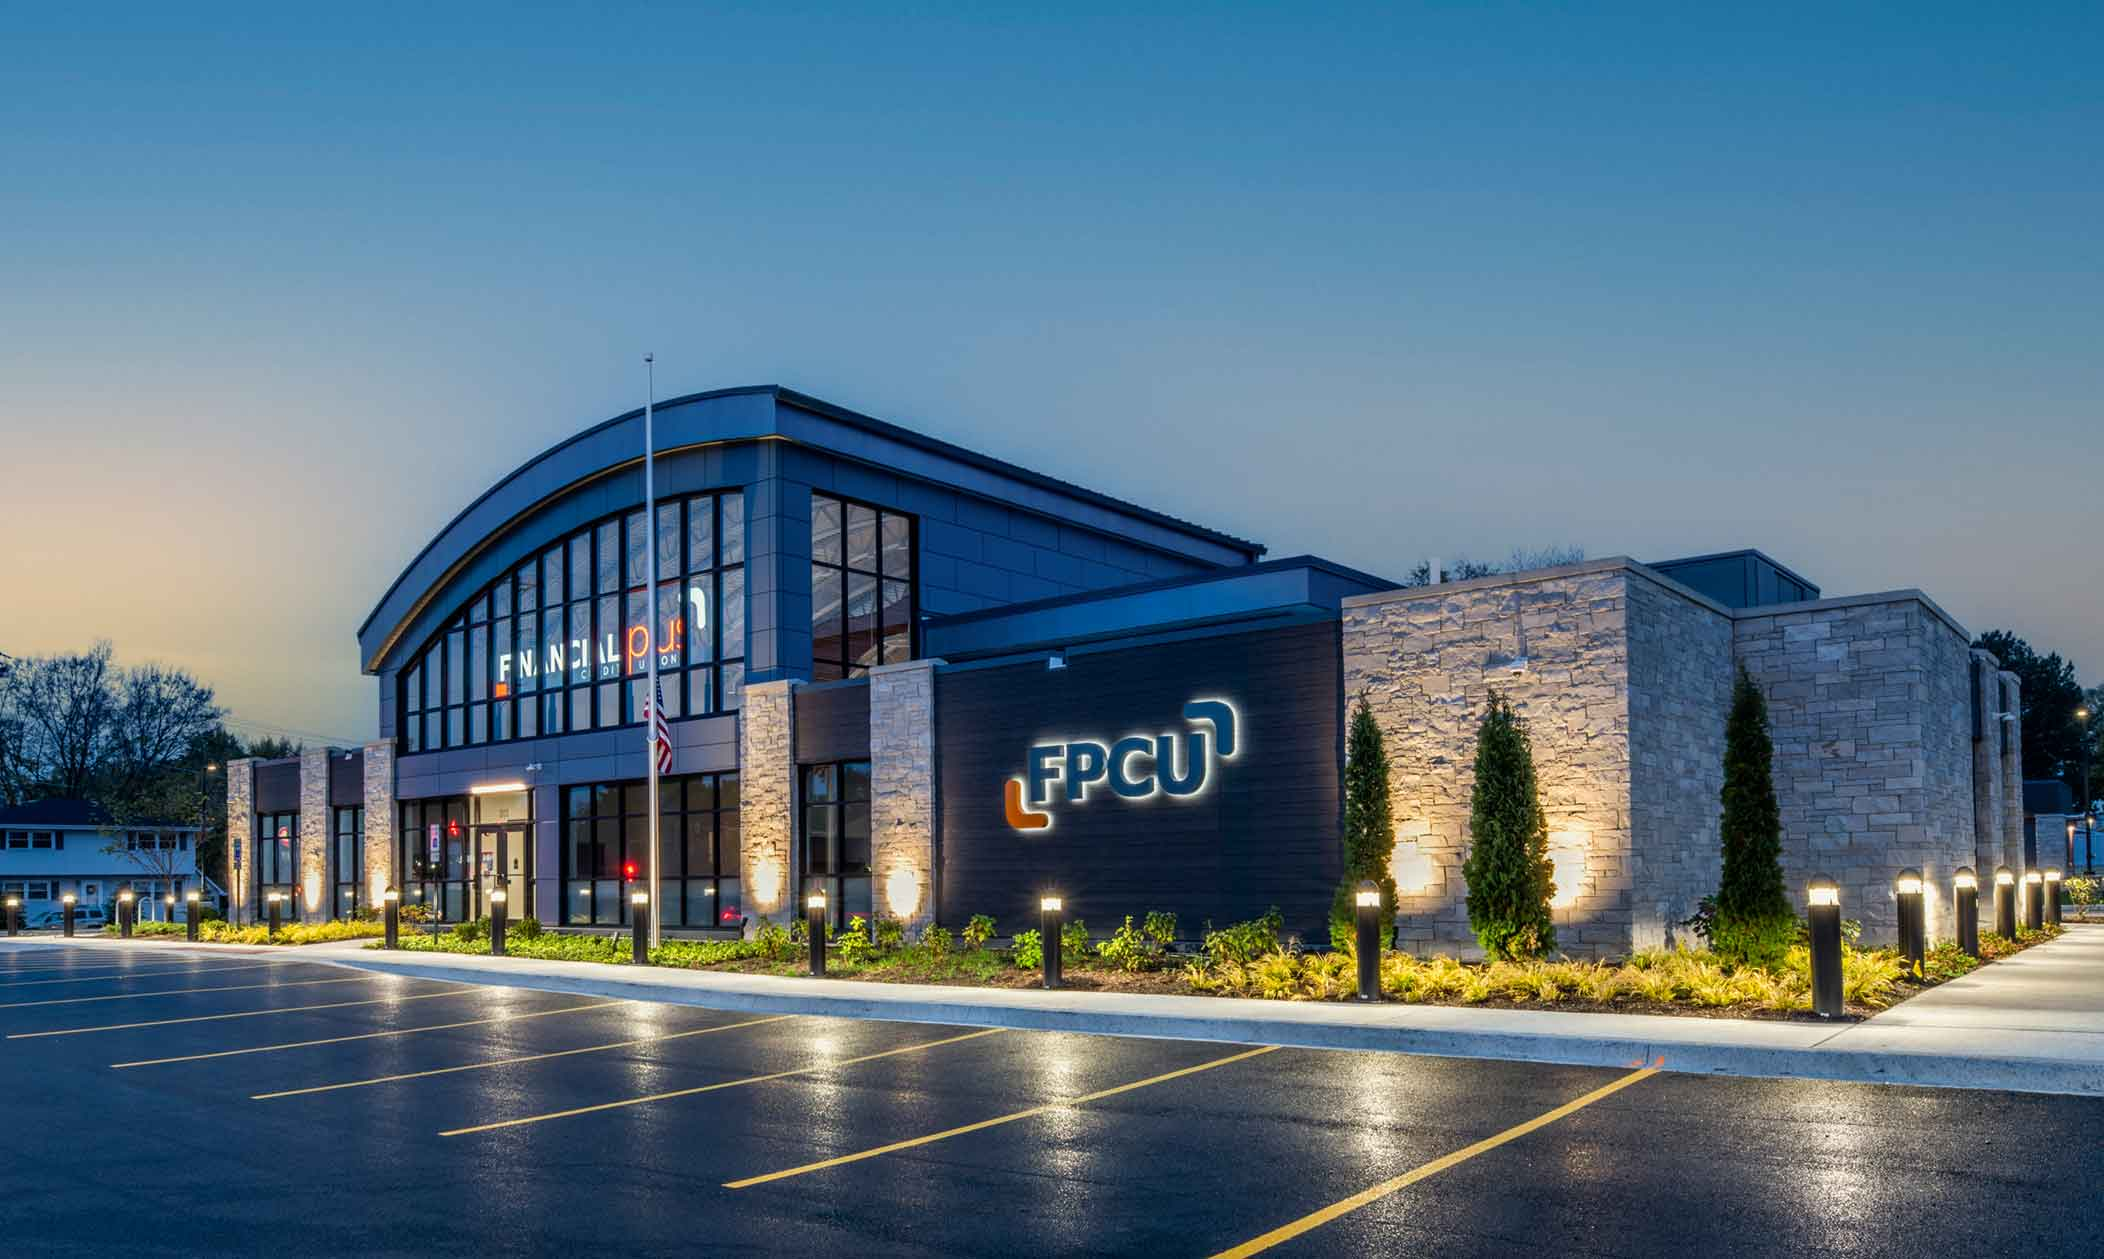 Joliet Commercial Architectural Photographer: Call today (815) 723-3051